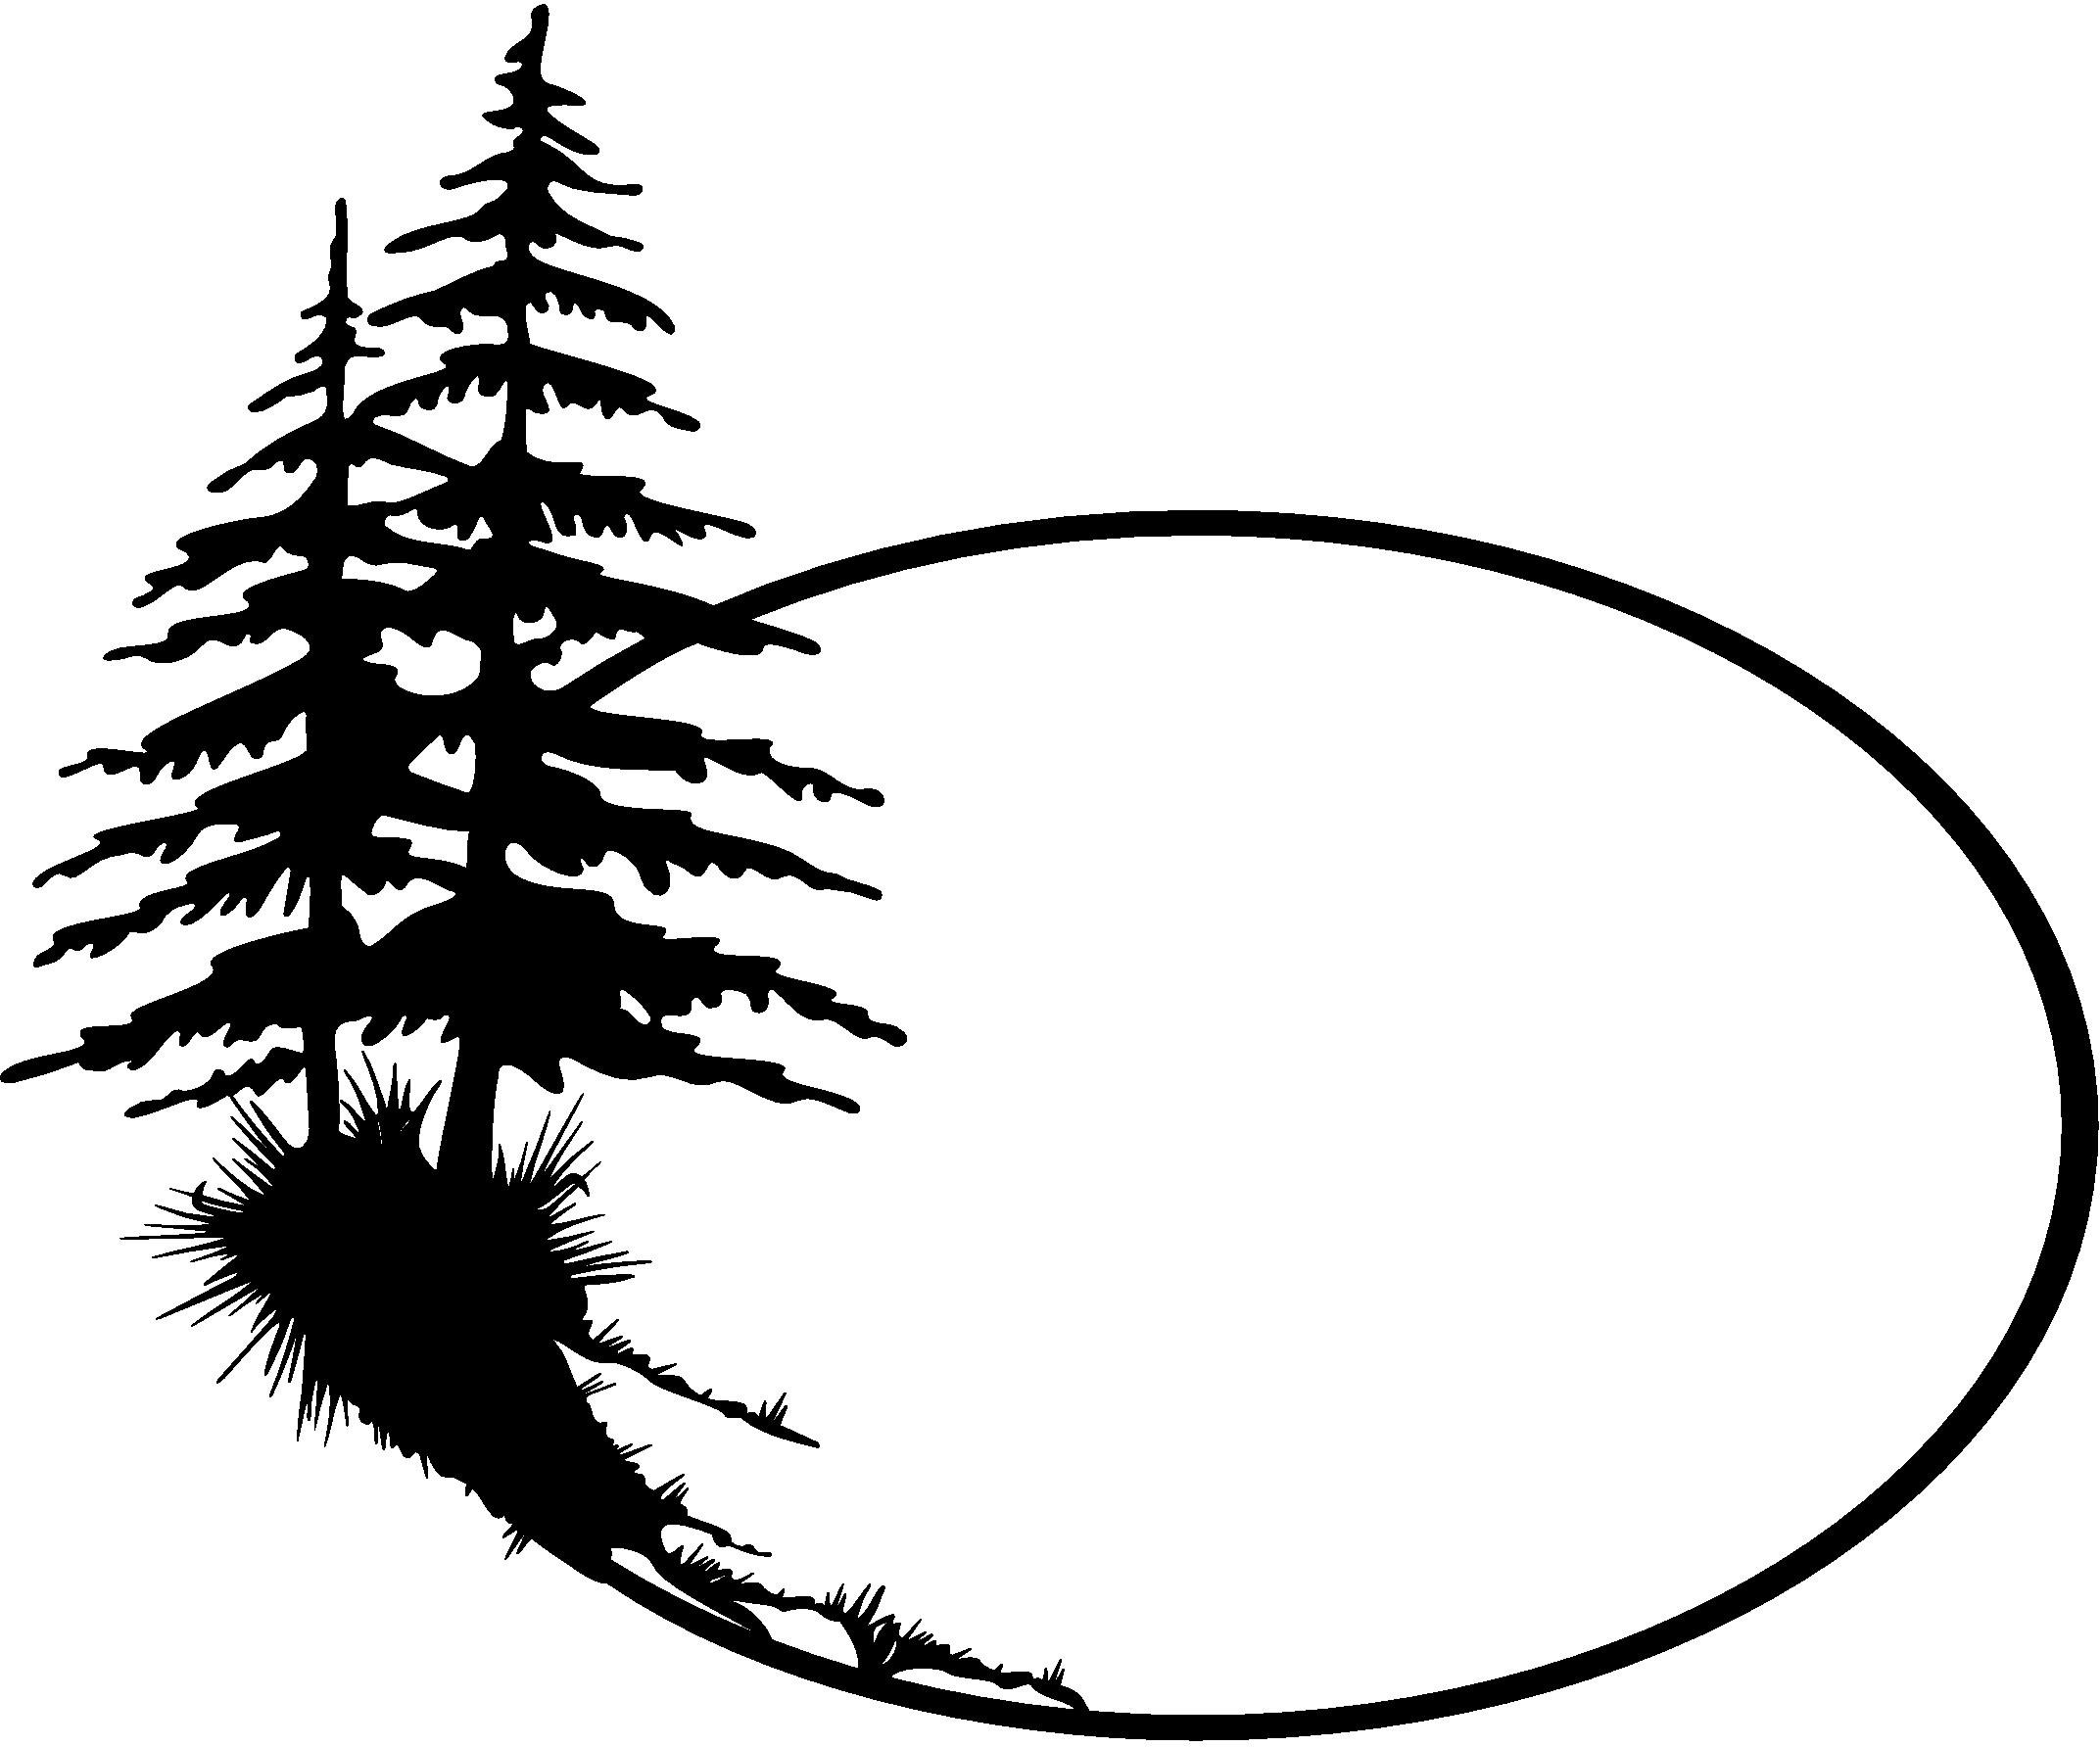 1000  ideas about Pine Tree Silhouette on Pinterest | Simple tree tattoo, Tree tattoos and Pine tree